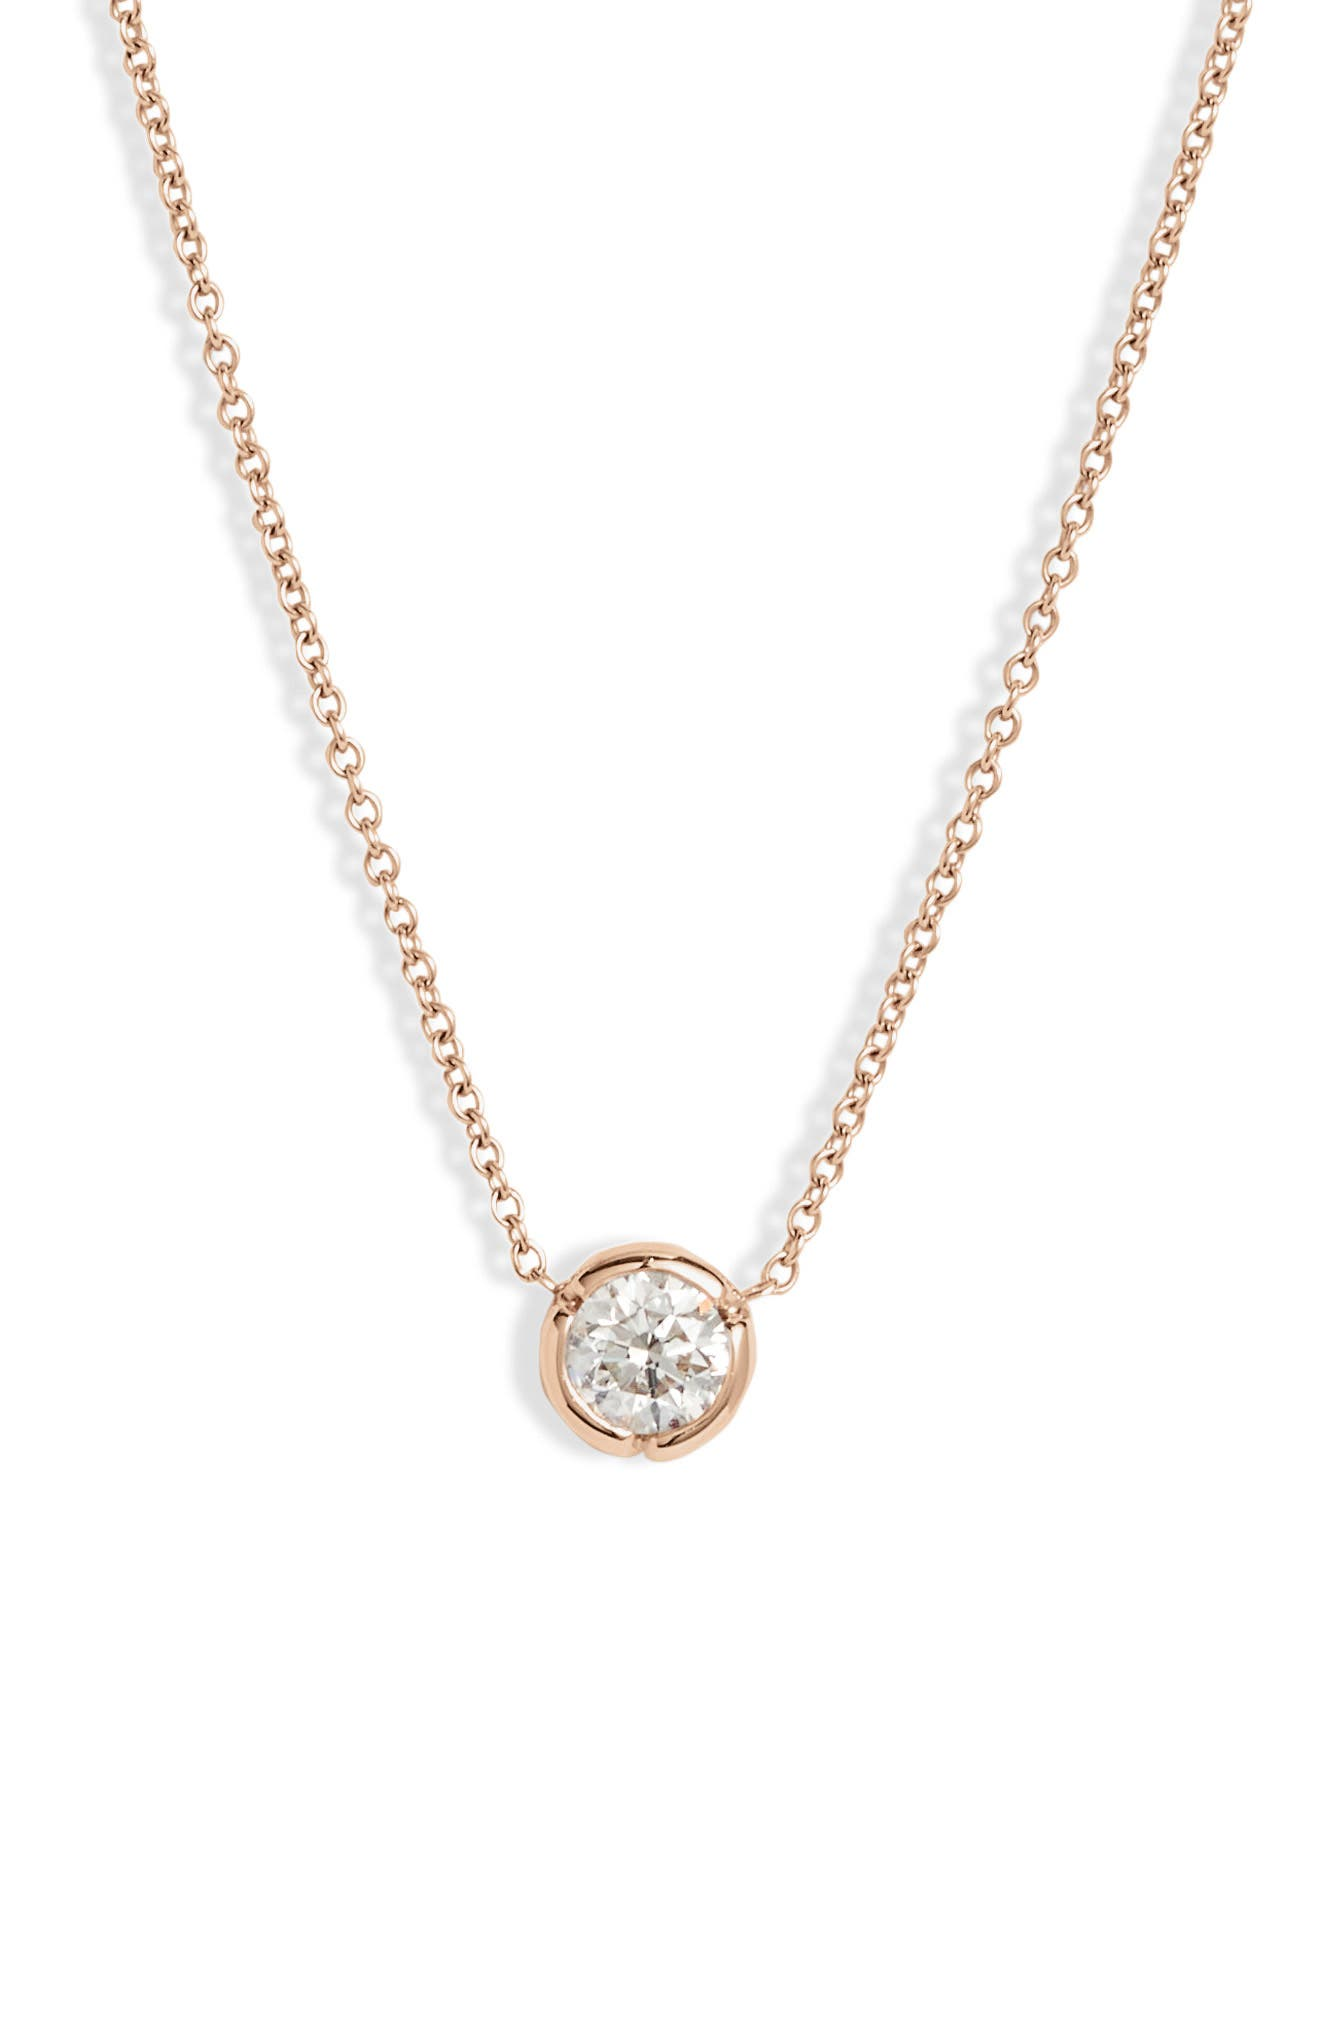 A notched bezel setting refreshes this lovely solitaire necklace that retains its timeless appeal with a fiery round diamond and dainty 18-karat-gold chain. Style Name: Bony Levy Large Bezel Diamond Solitaire Necklace (Nordstrom Exclusive). Style Number: 5895517. Available in stores.